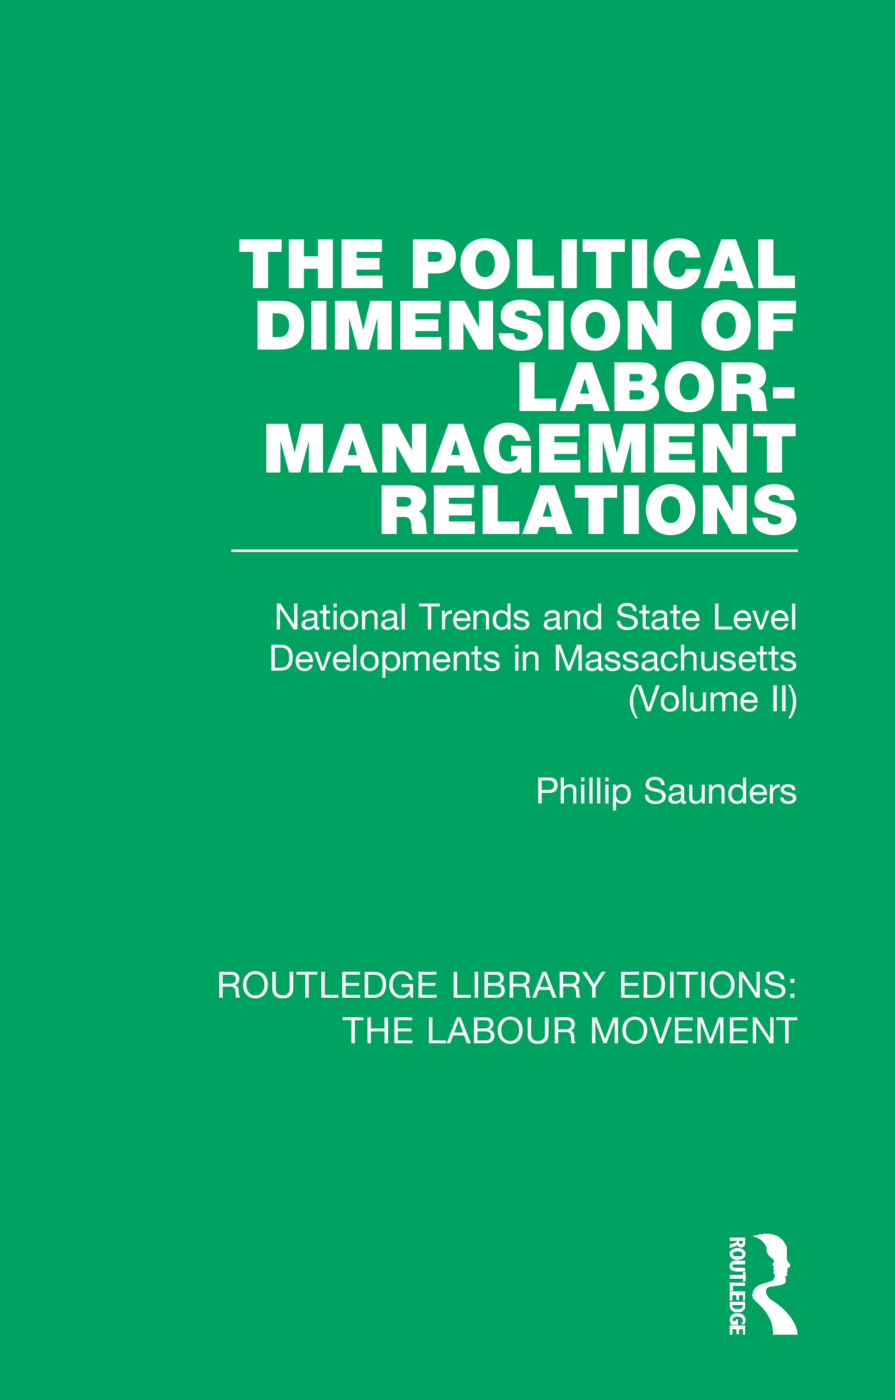 The Political Dimension of Labor-Management Relations: National Trends and State Level Developments in Massachusetts (Volume 2) book cover